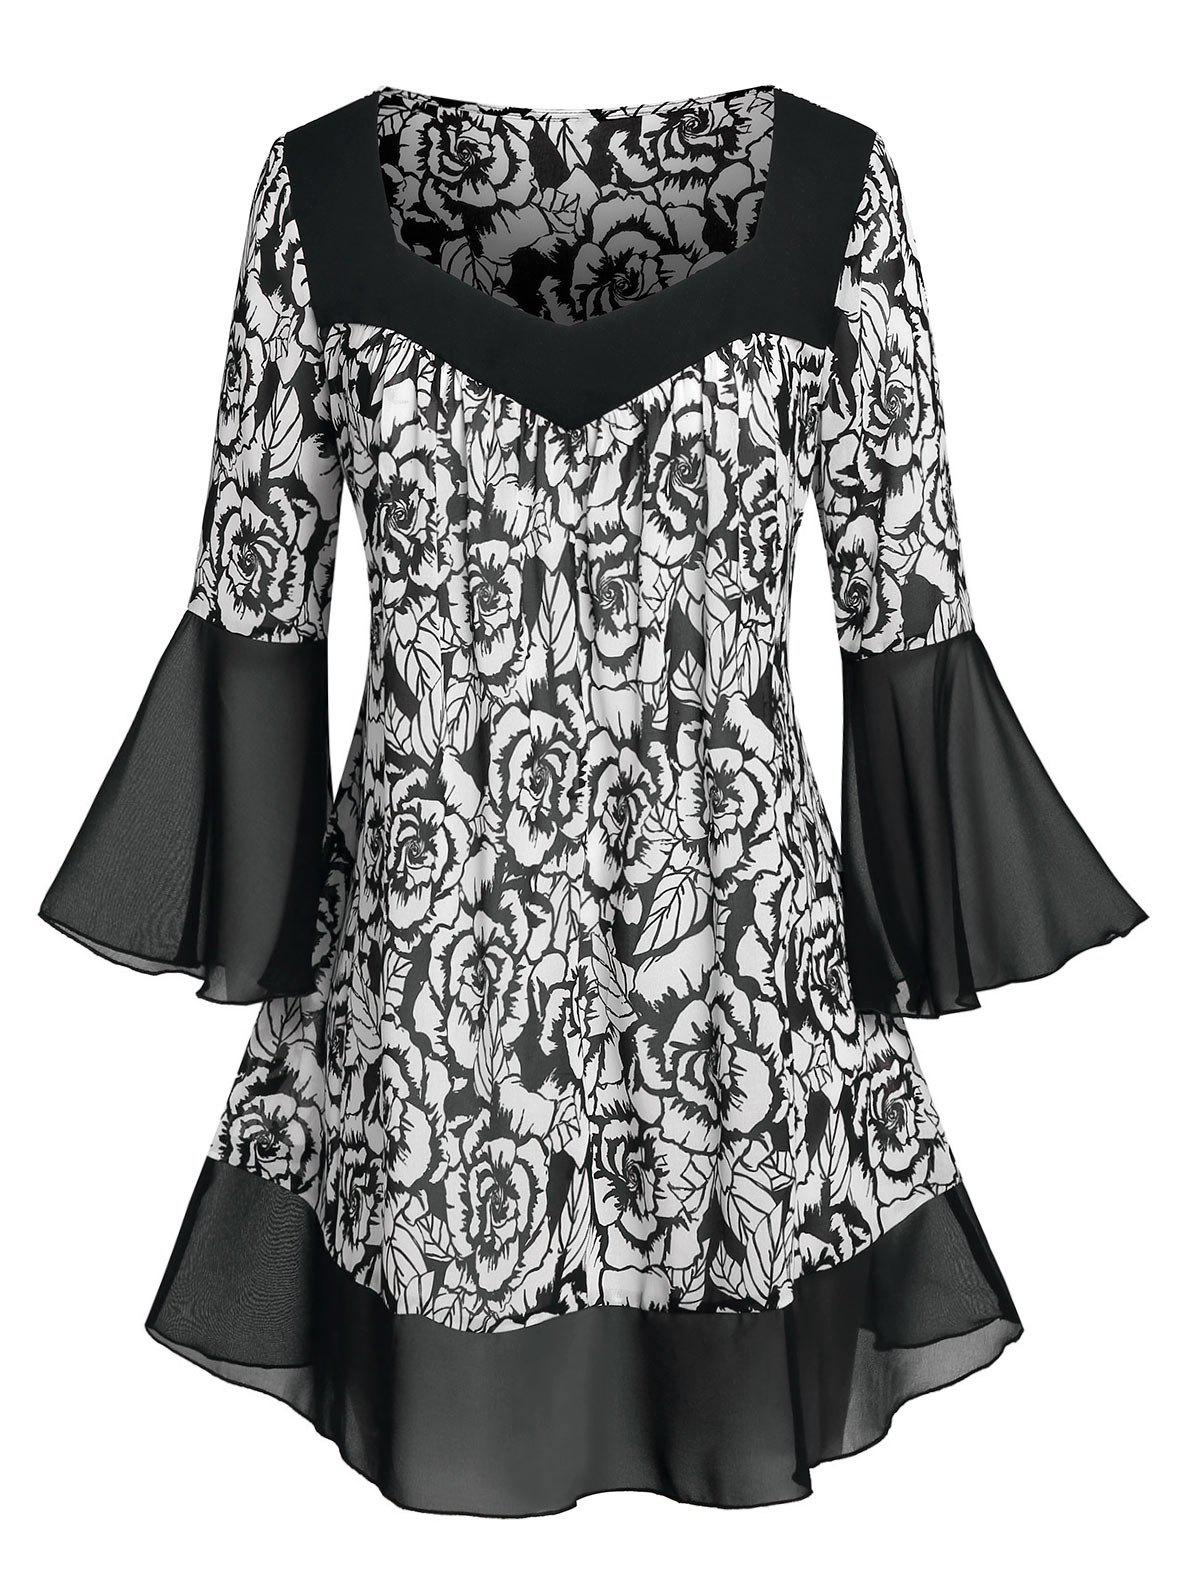 Affordable Plus Size Flower Pattern Flare Sleeve Chiffon Sheer Blouse